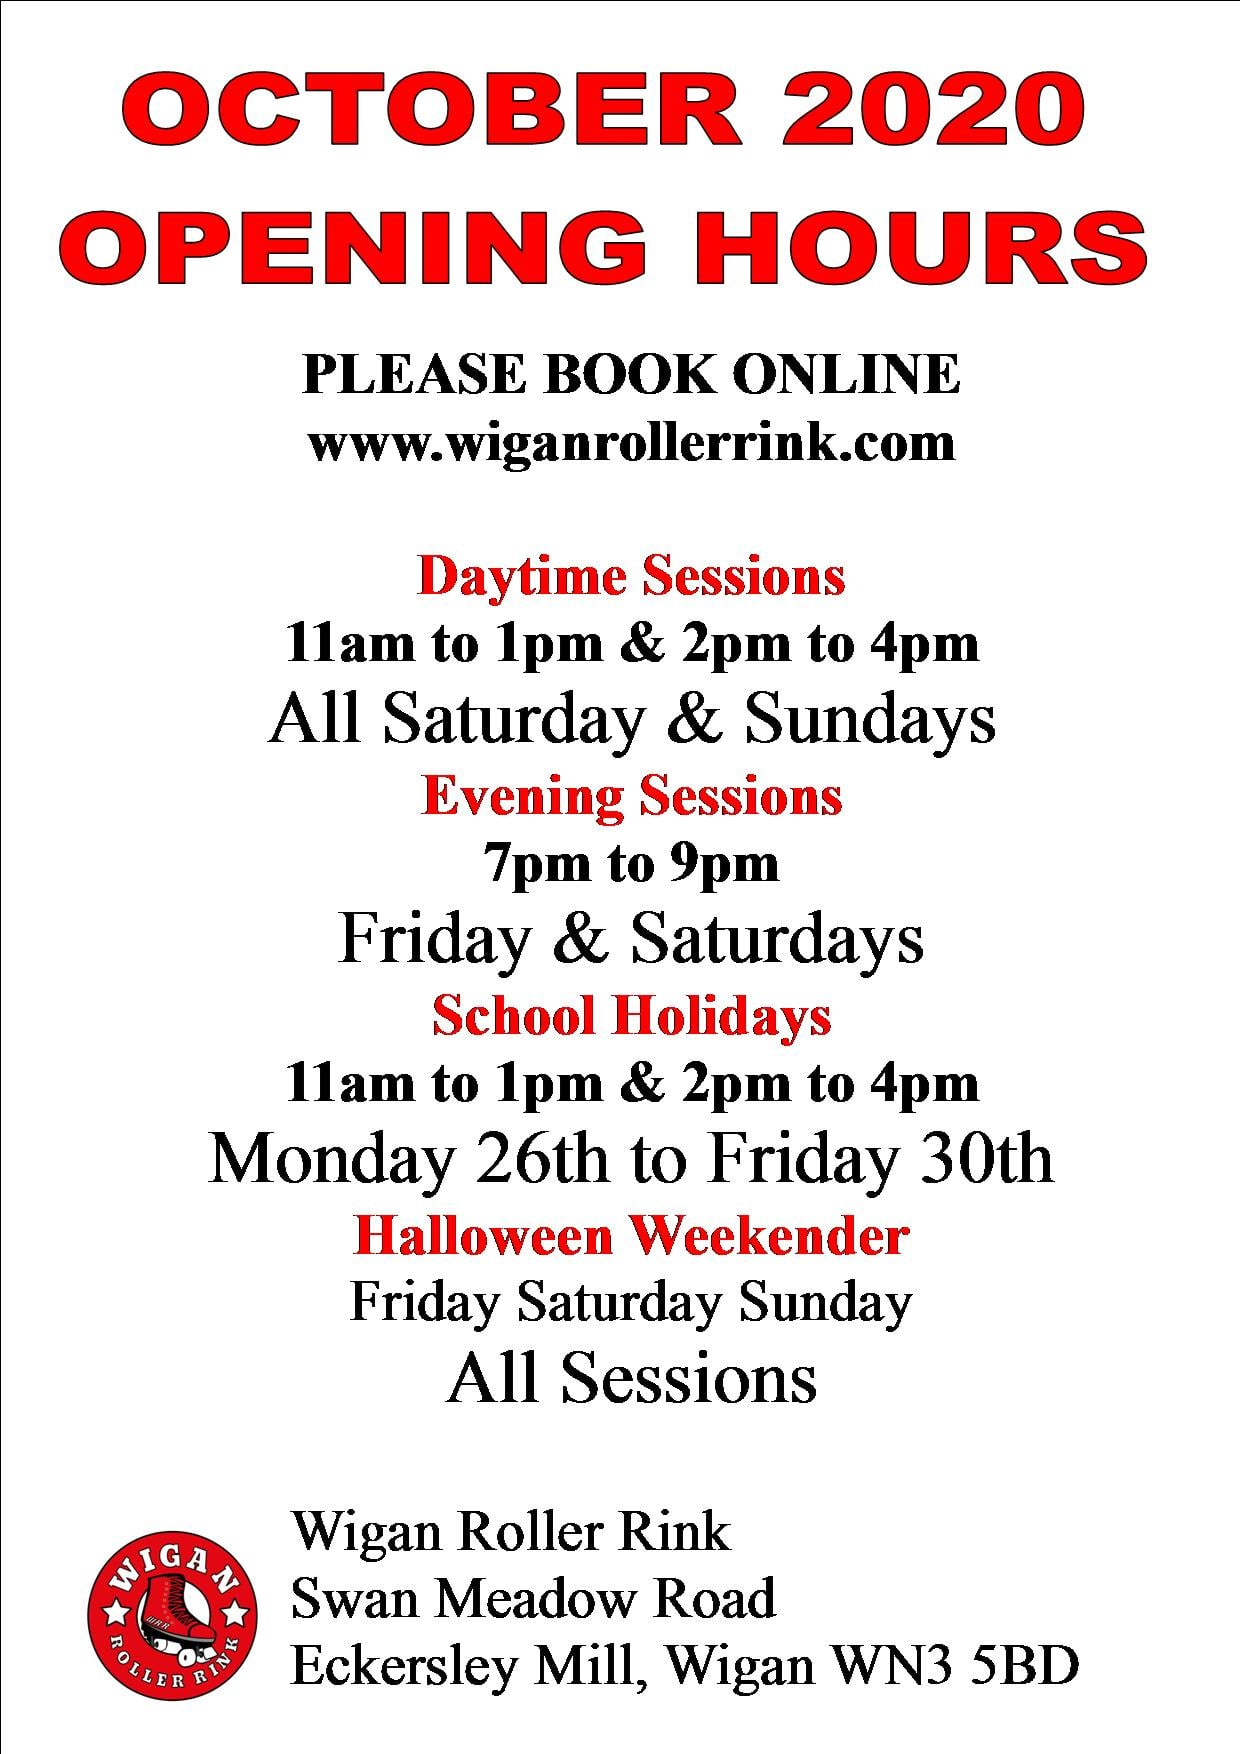 OCTOBER OPENING TIMES